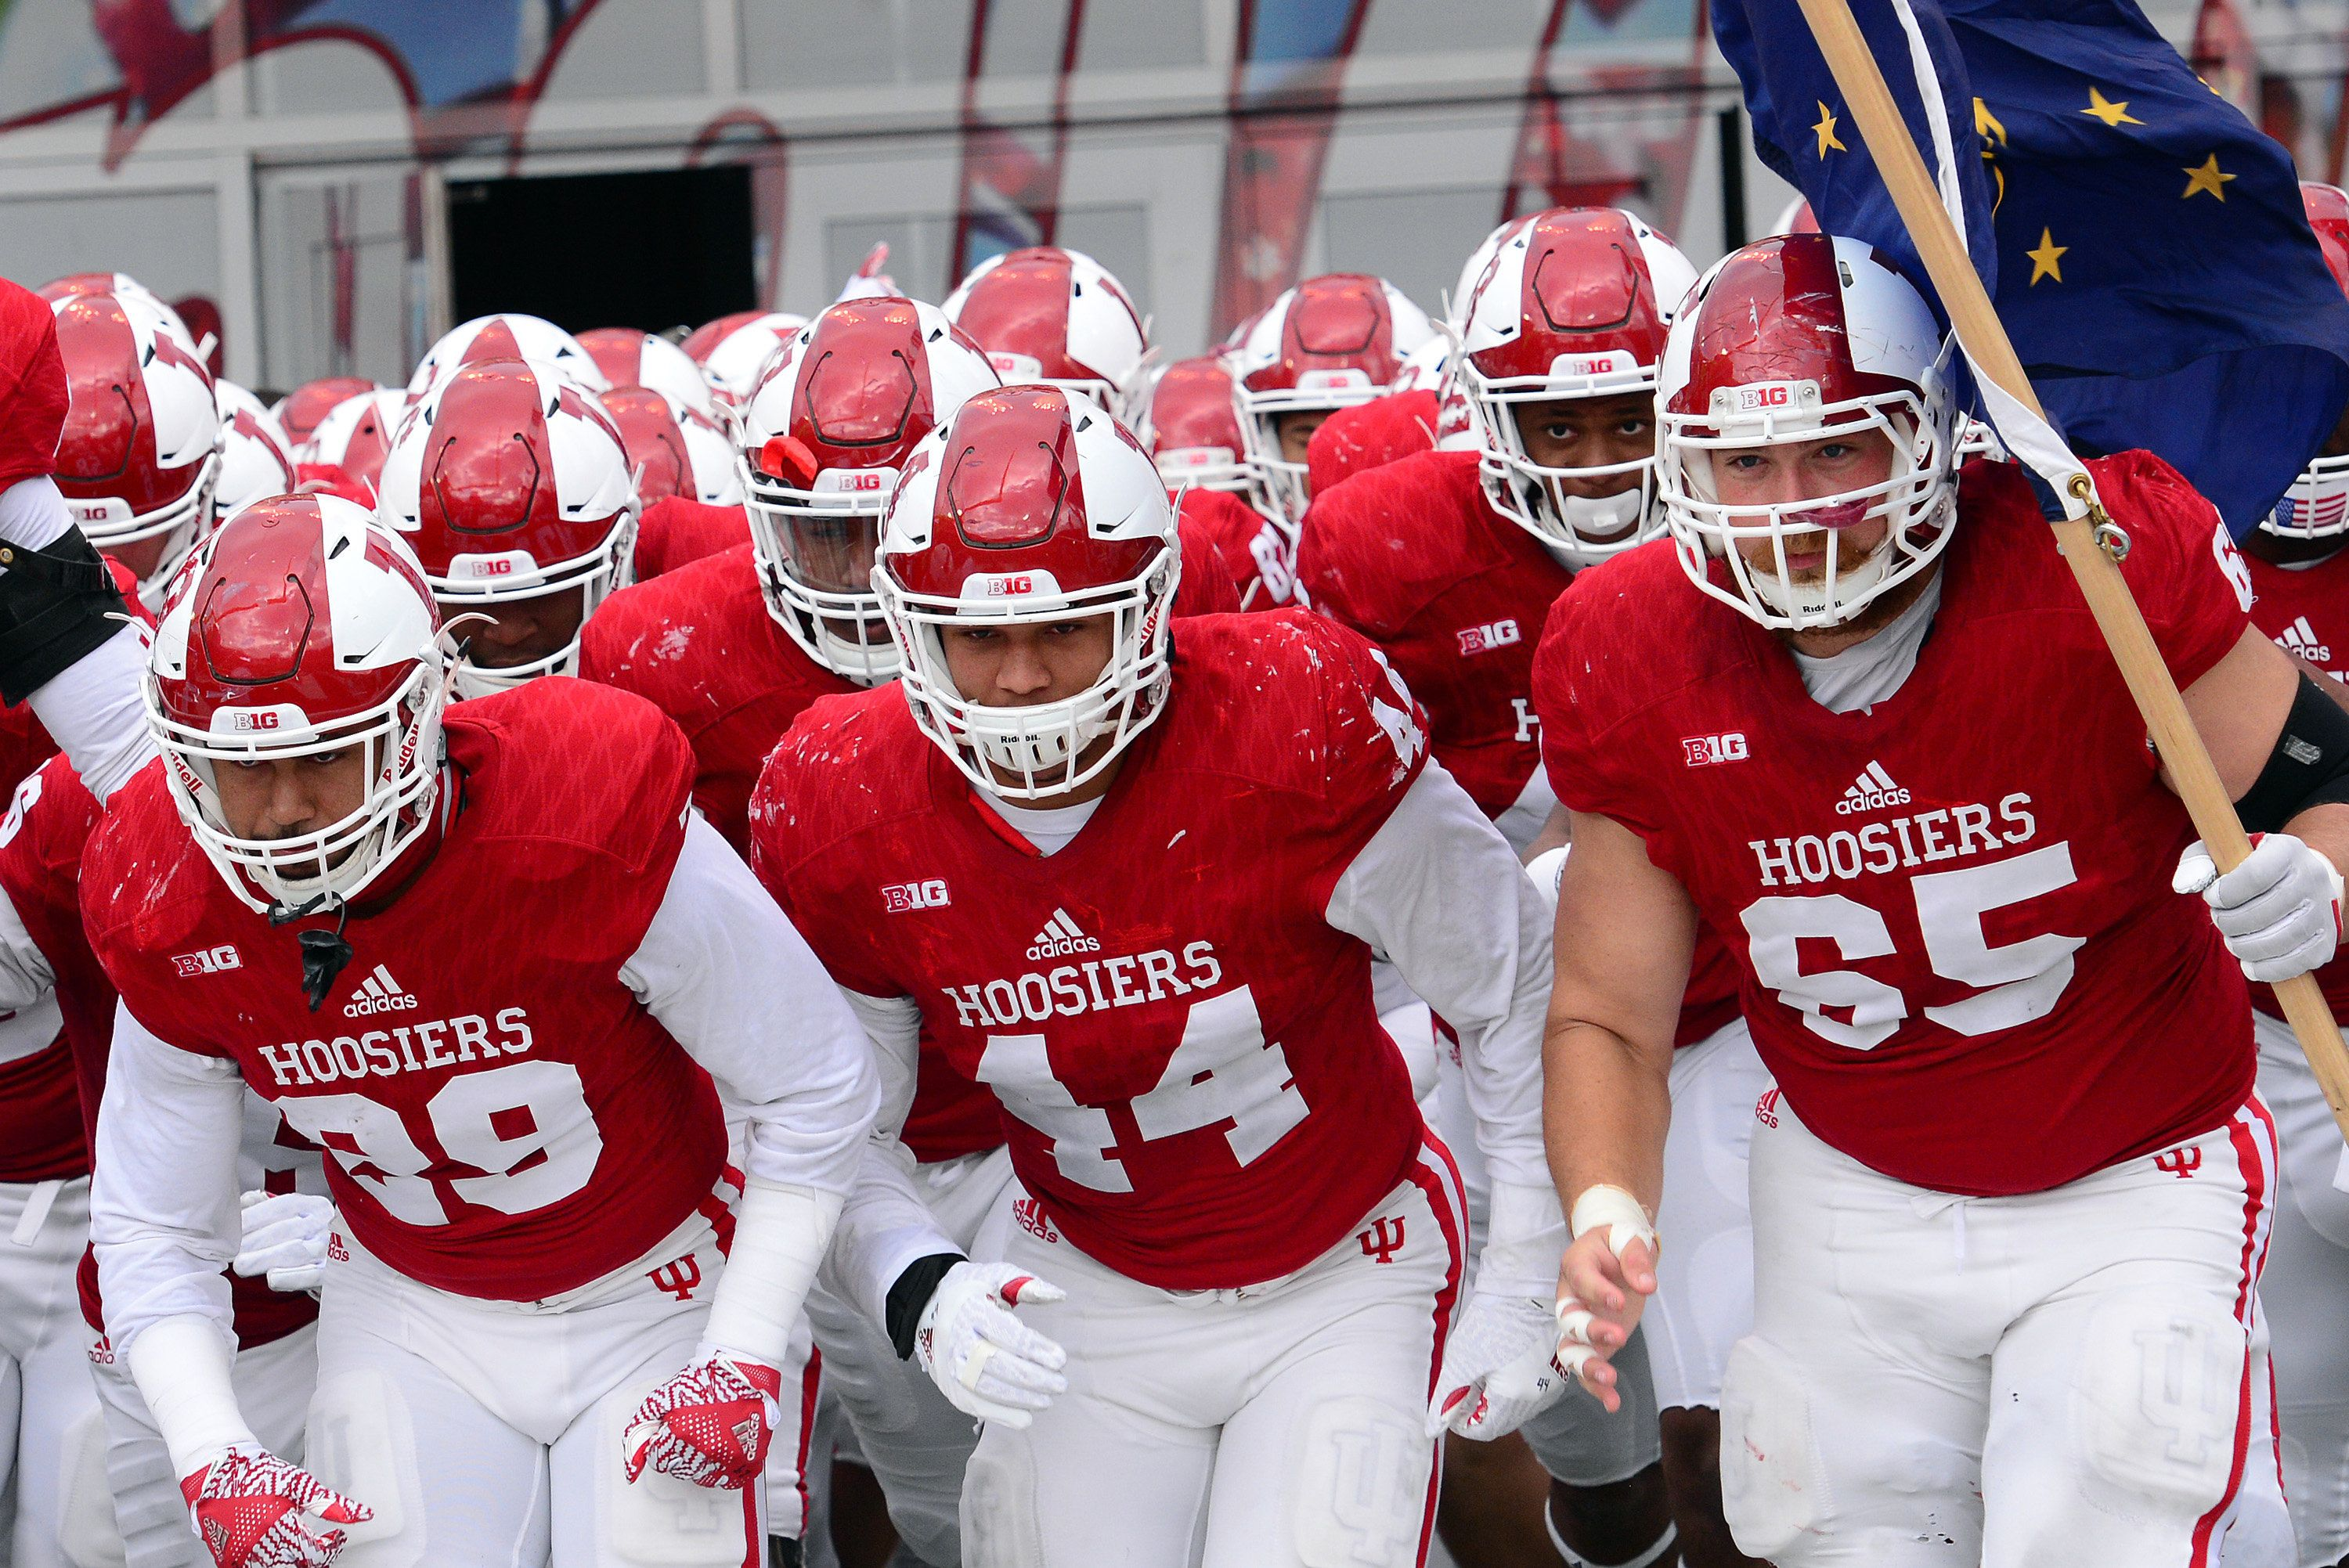 The Indiana University Hoosiers run onto the field for a Big Ten Conference game in November 2016.